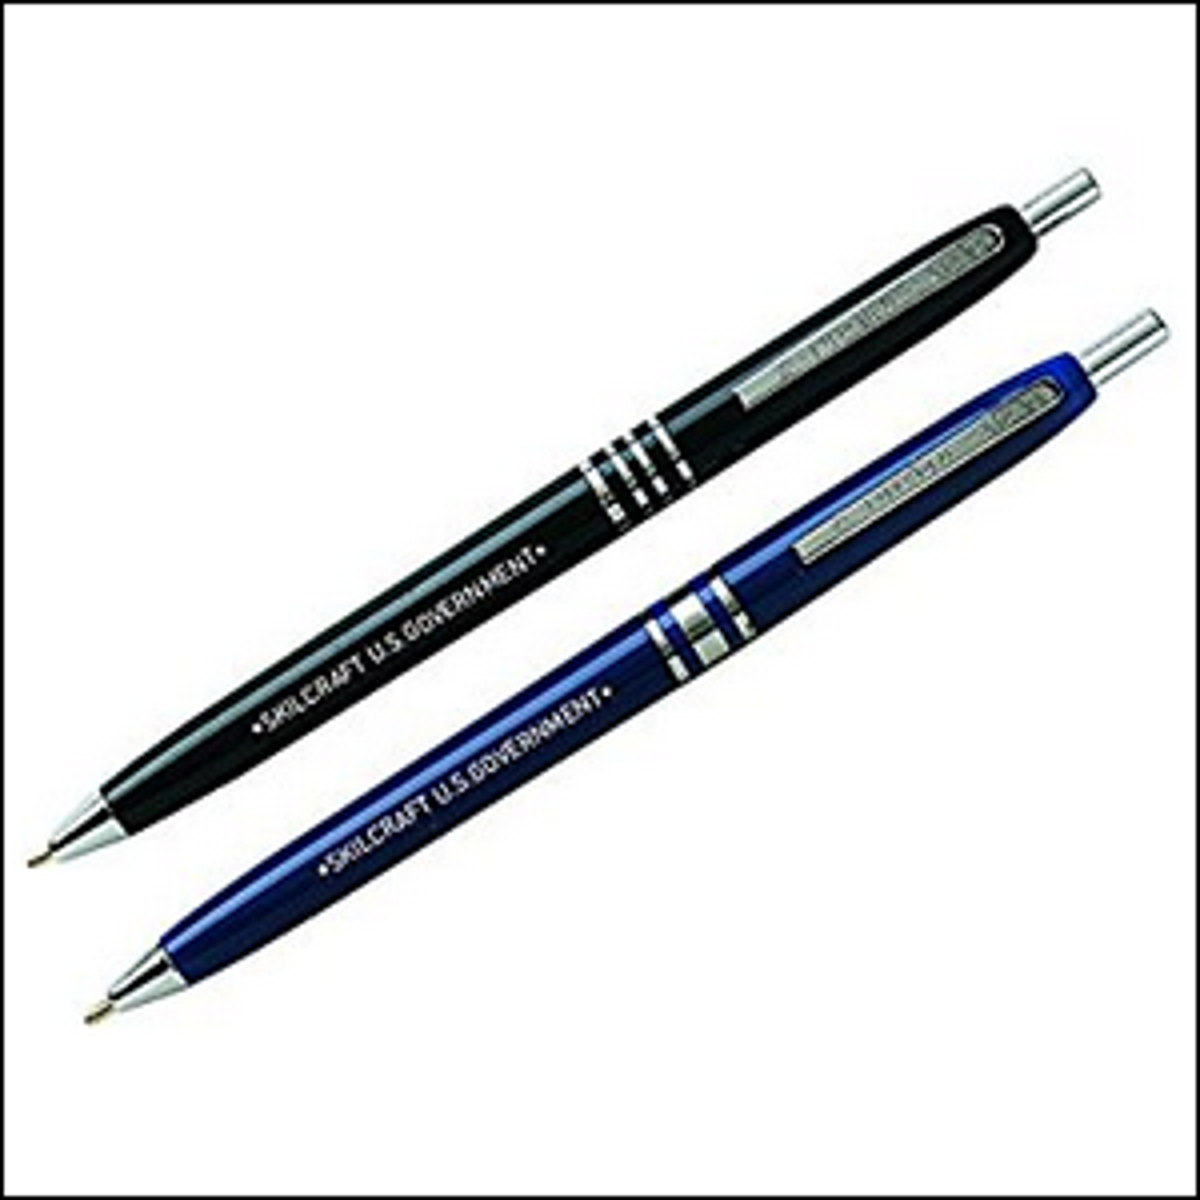 A pair of Skilcraft ink pens.